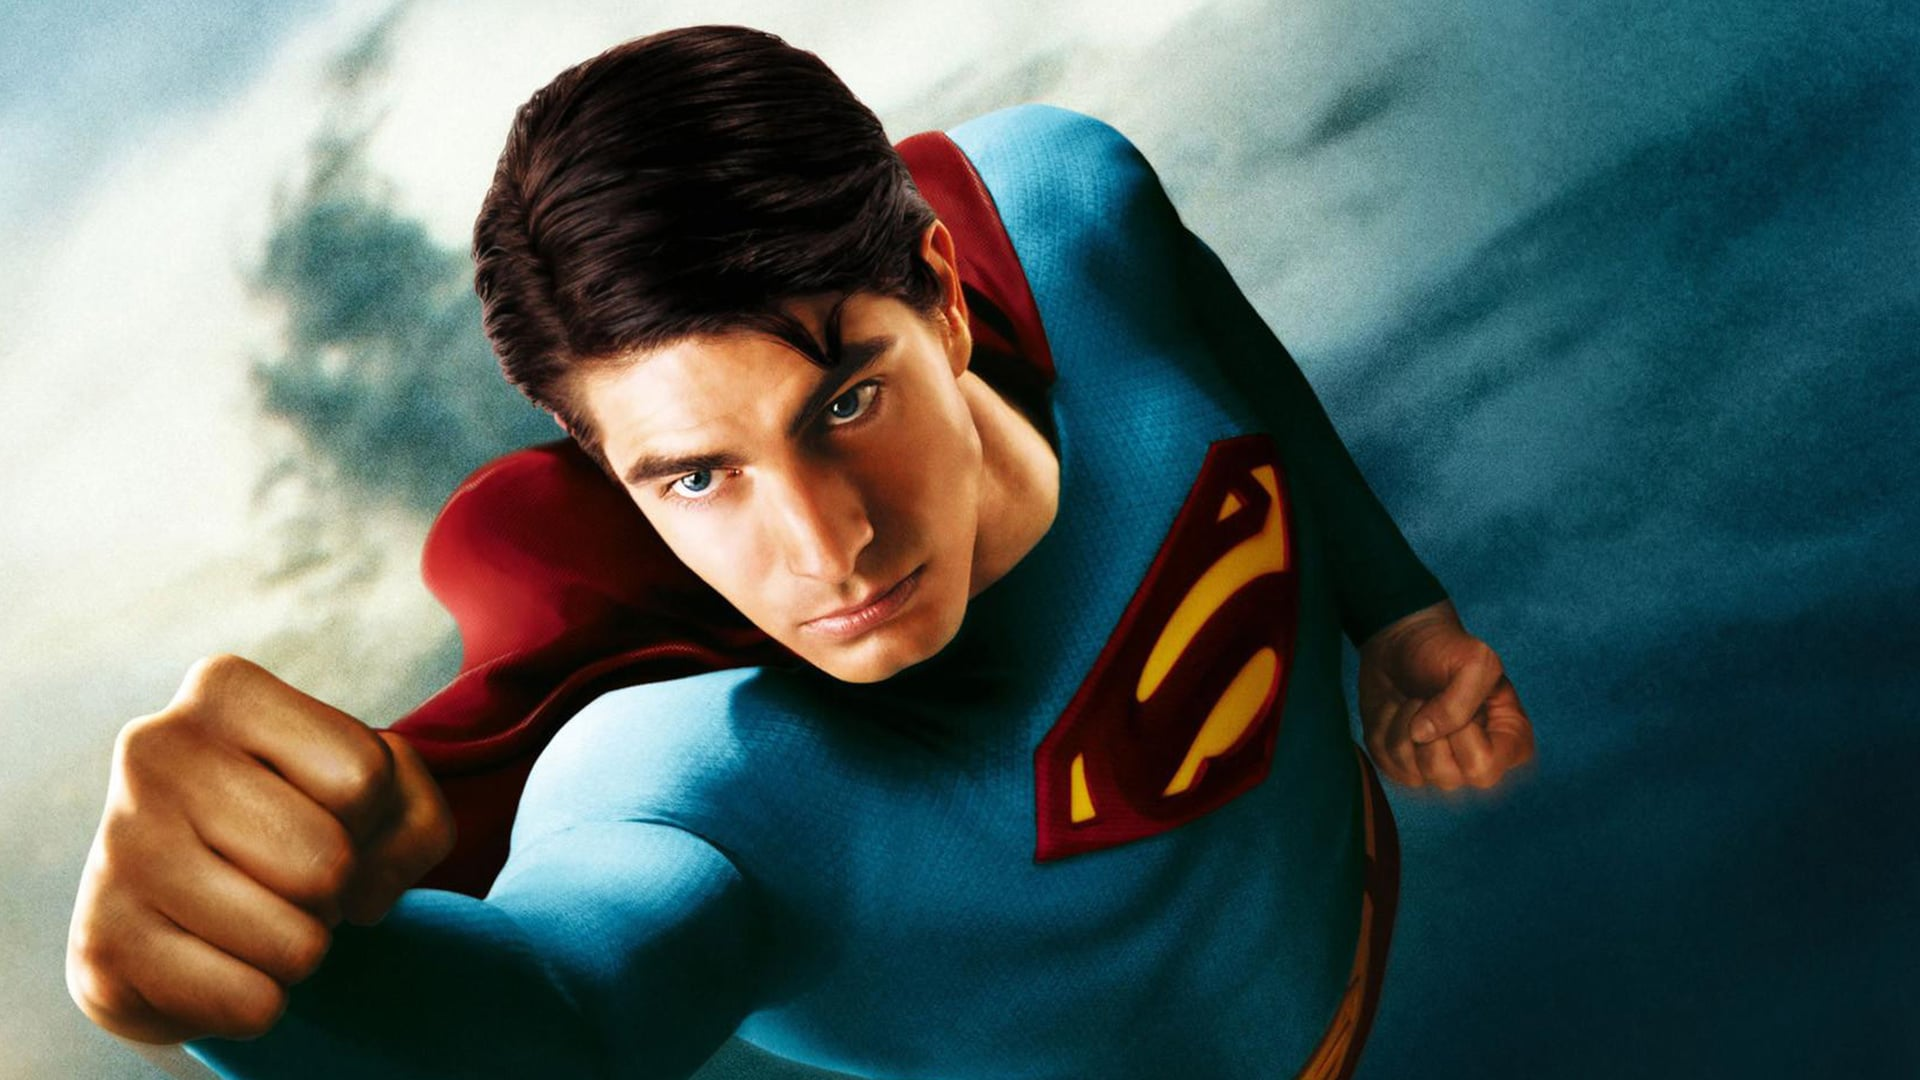 Iphone 5 Superman Wallpaper Brandon Routh Hd Wallpapers Free Donwload